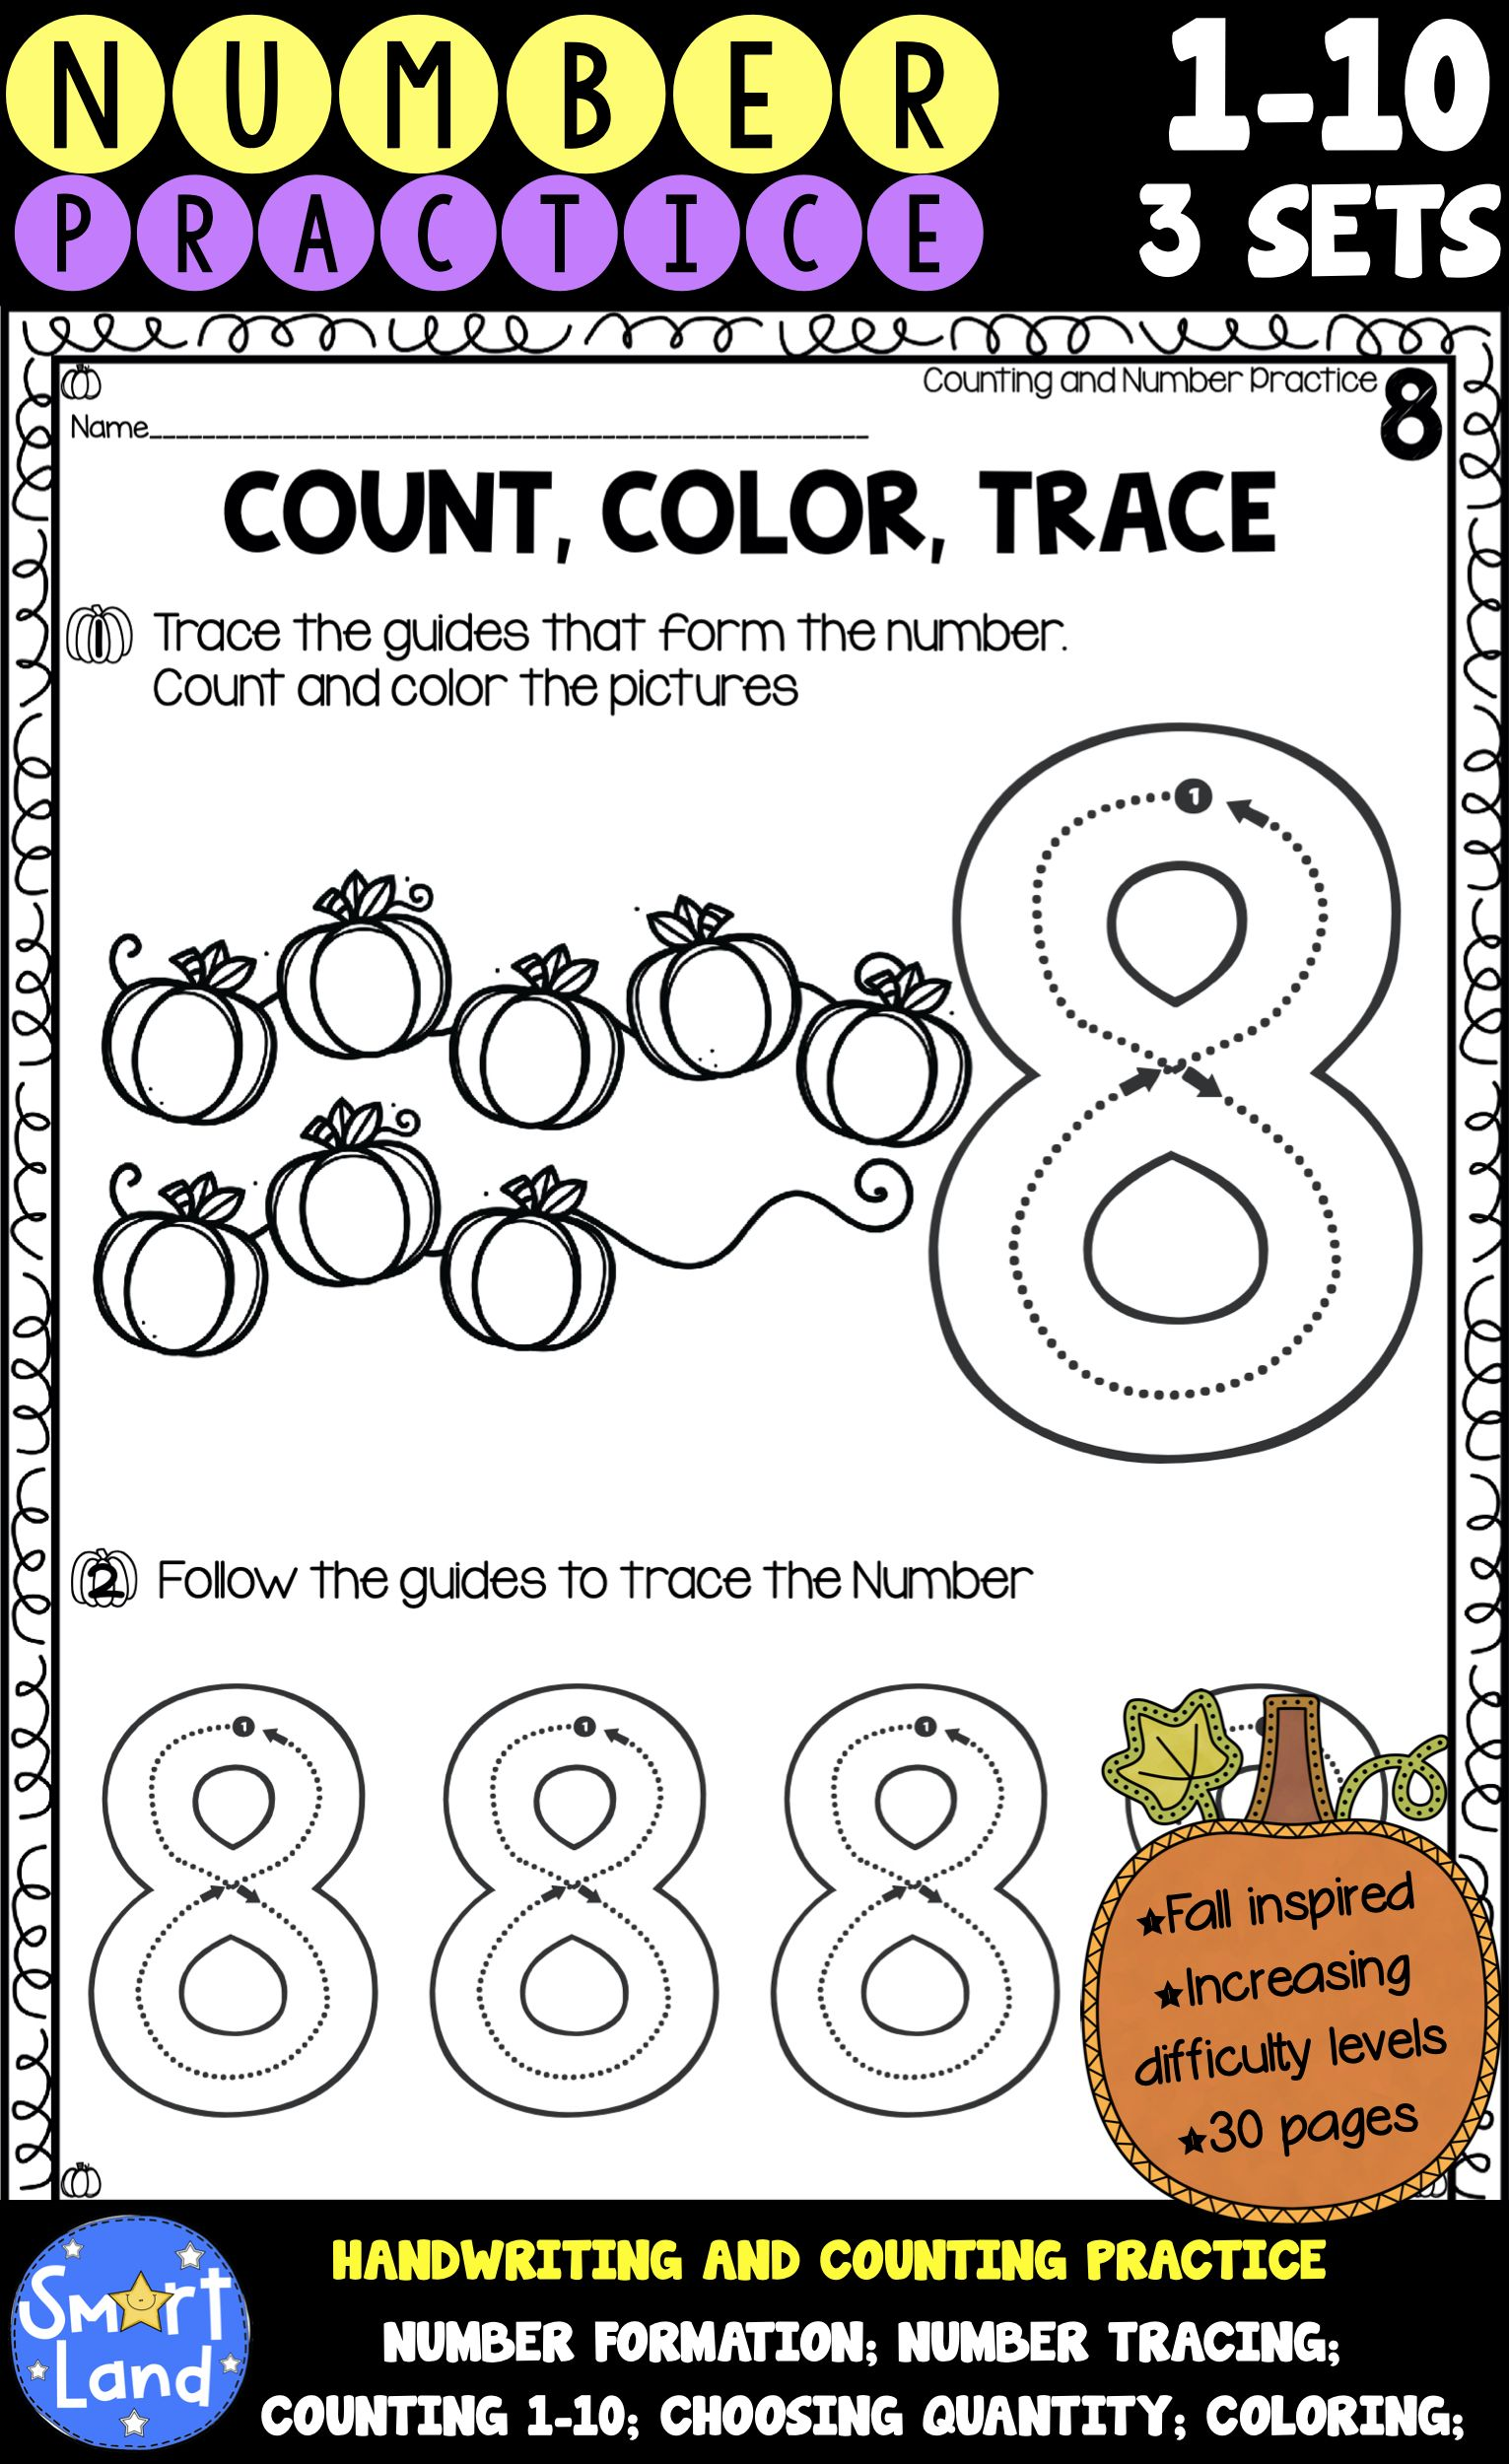 Number Handwriting And Counting Practice 3sets